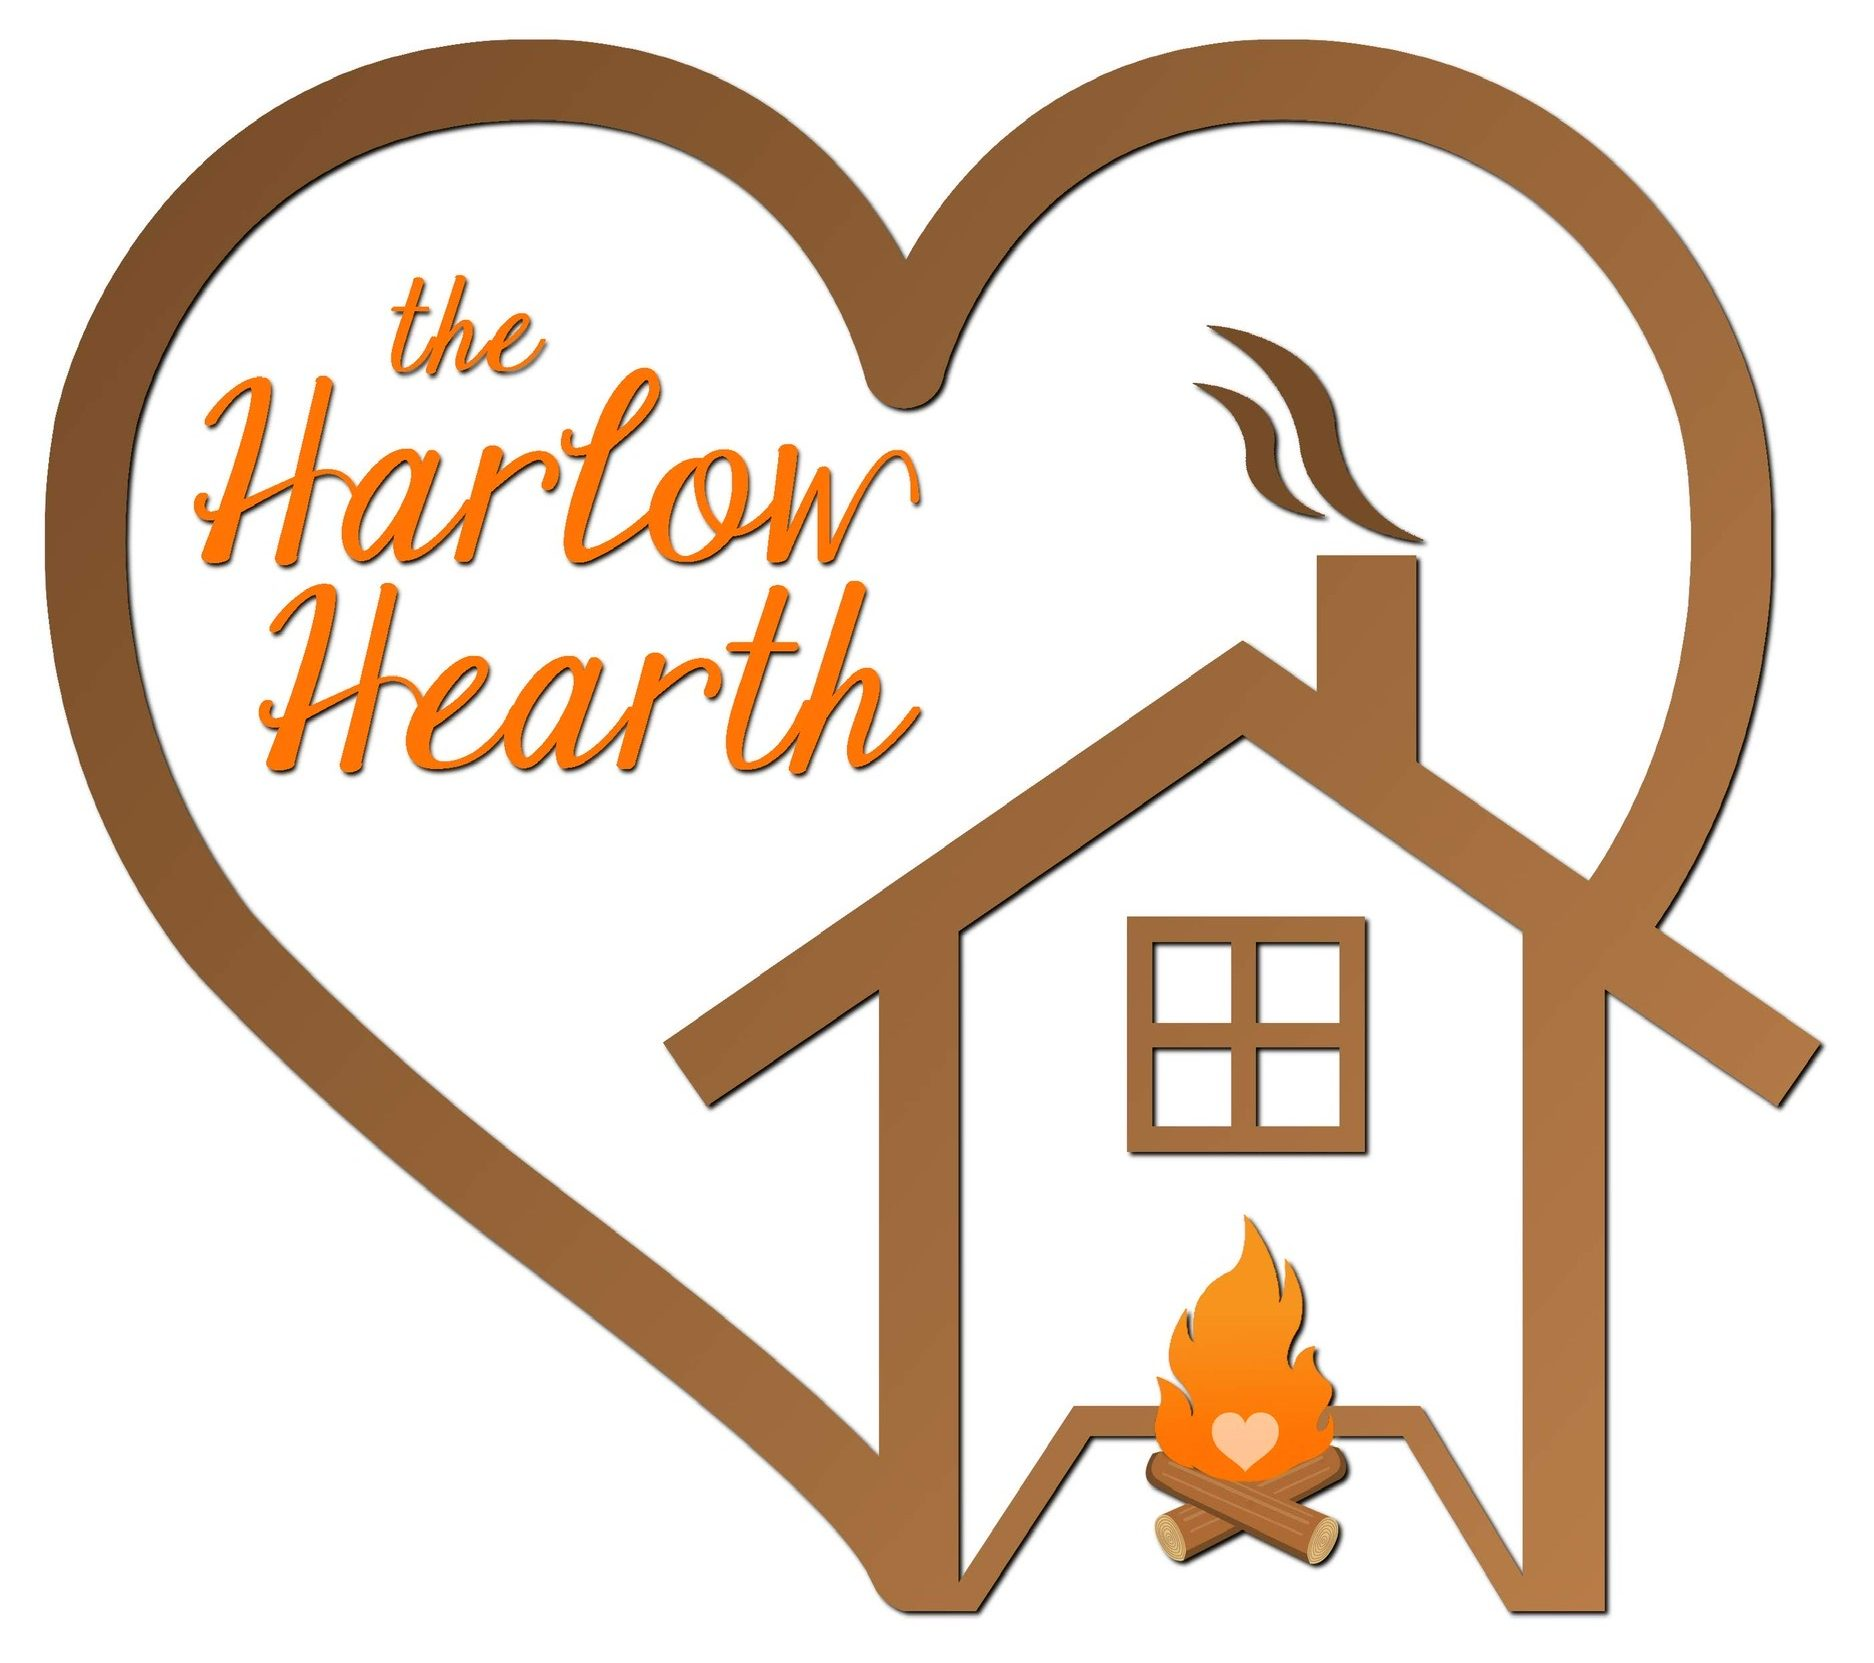 The Harlow Hearth